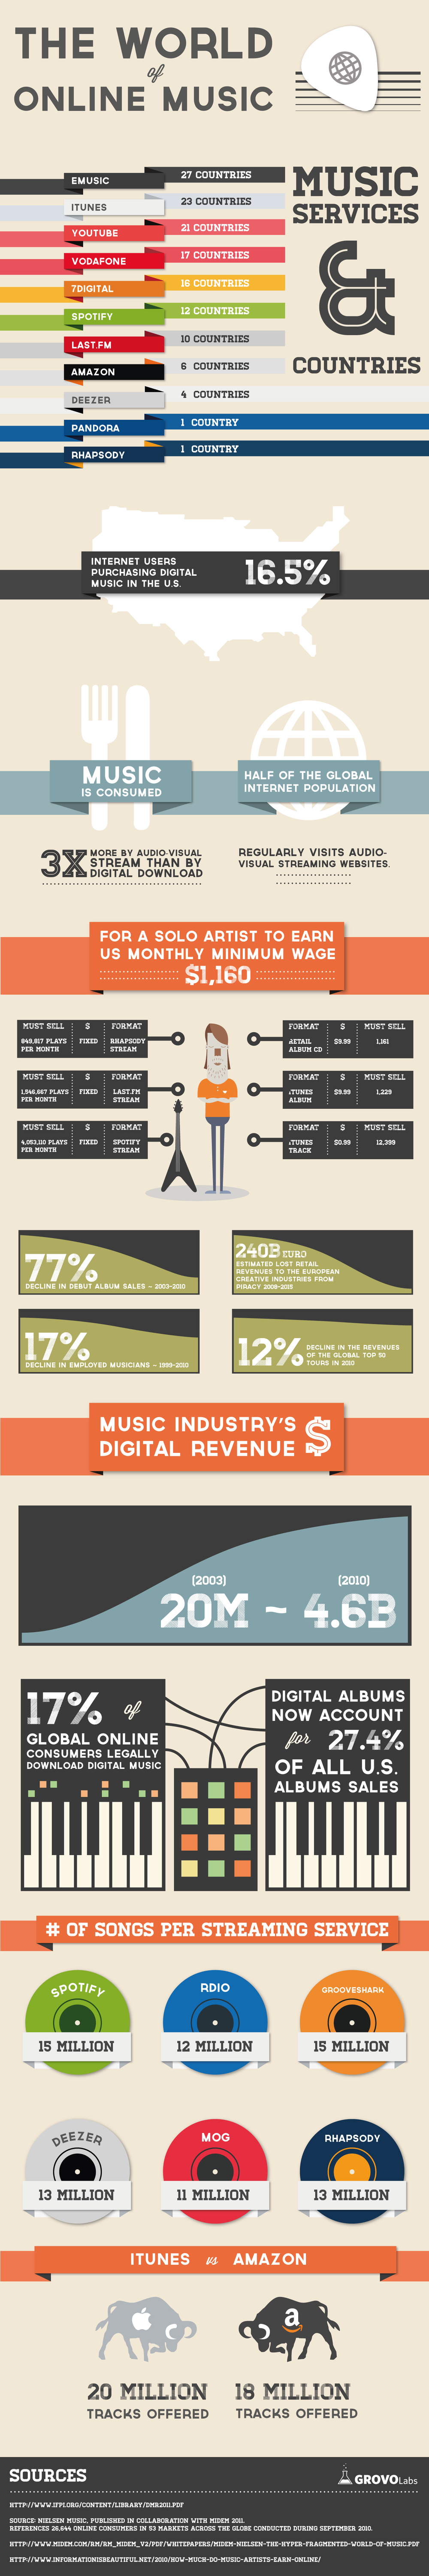 The world of online music. For a solo artist to earn